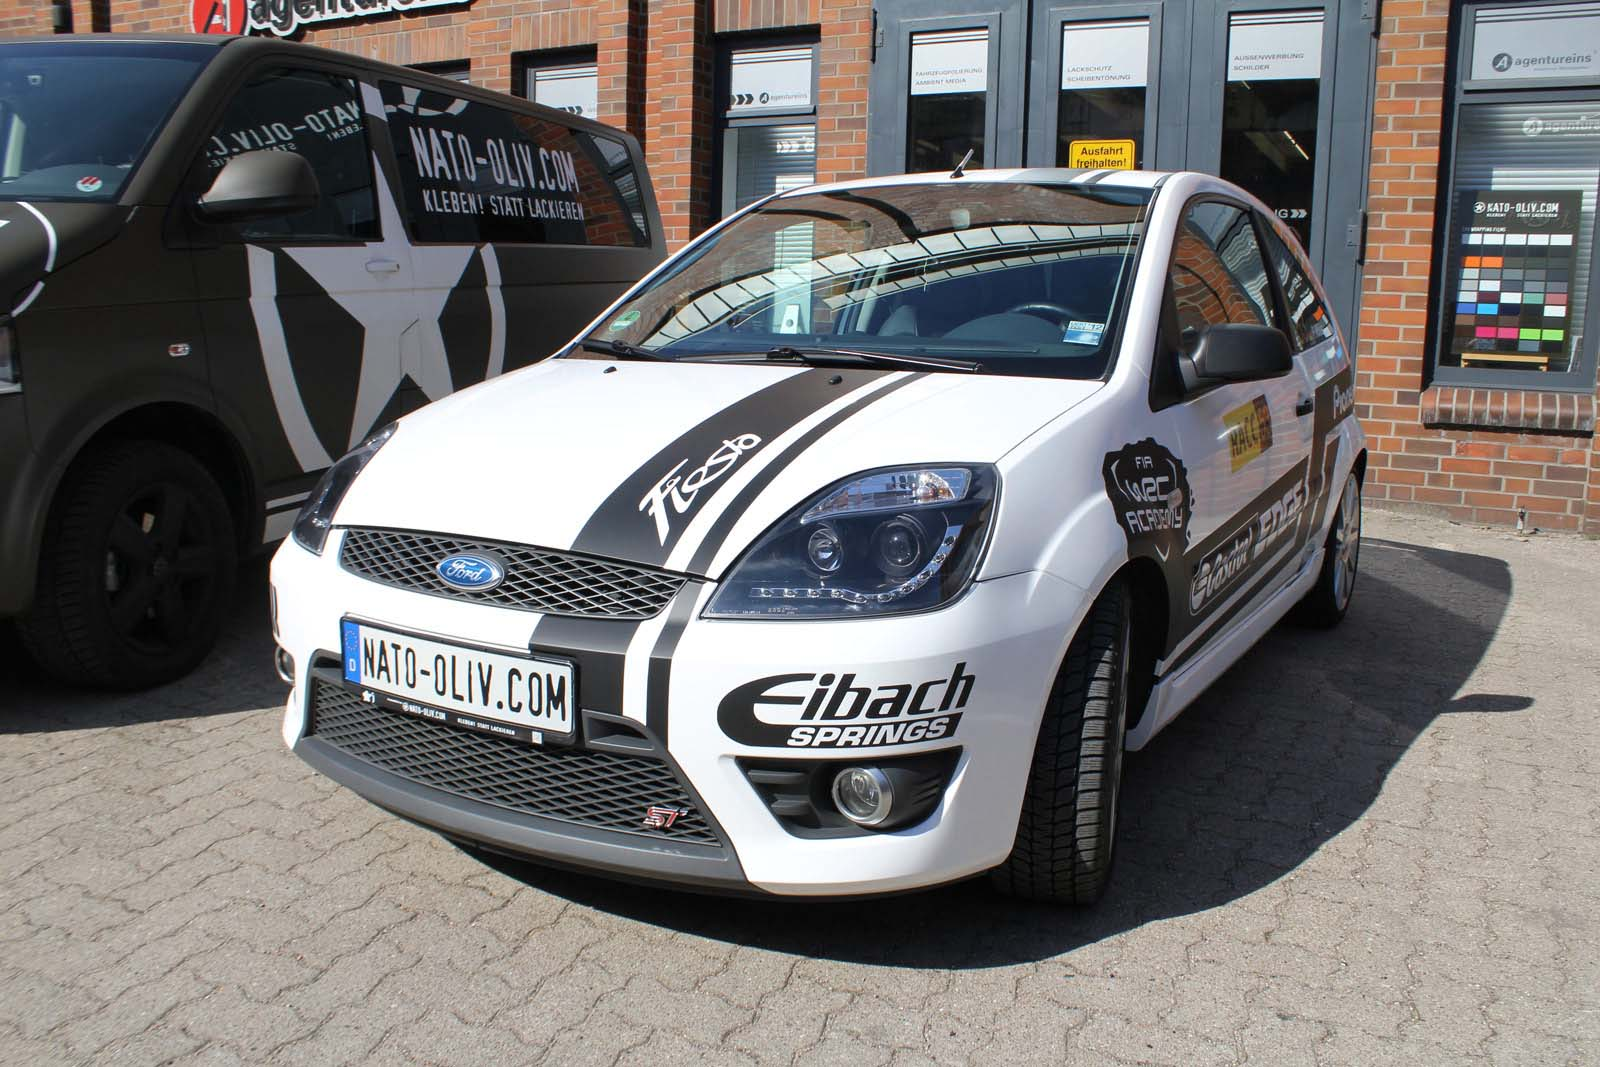 FORD_FIESTA_WRAPPING_WEISS_GLANZ_MIT_RACING_DESIGN_SCHWARZ_MATT_18